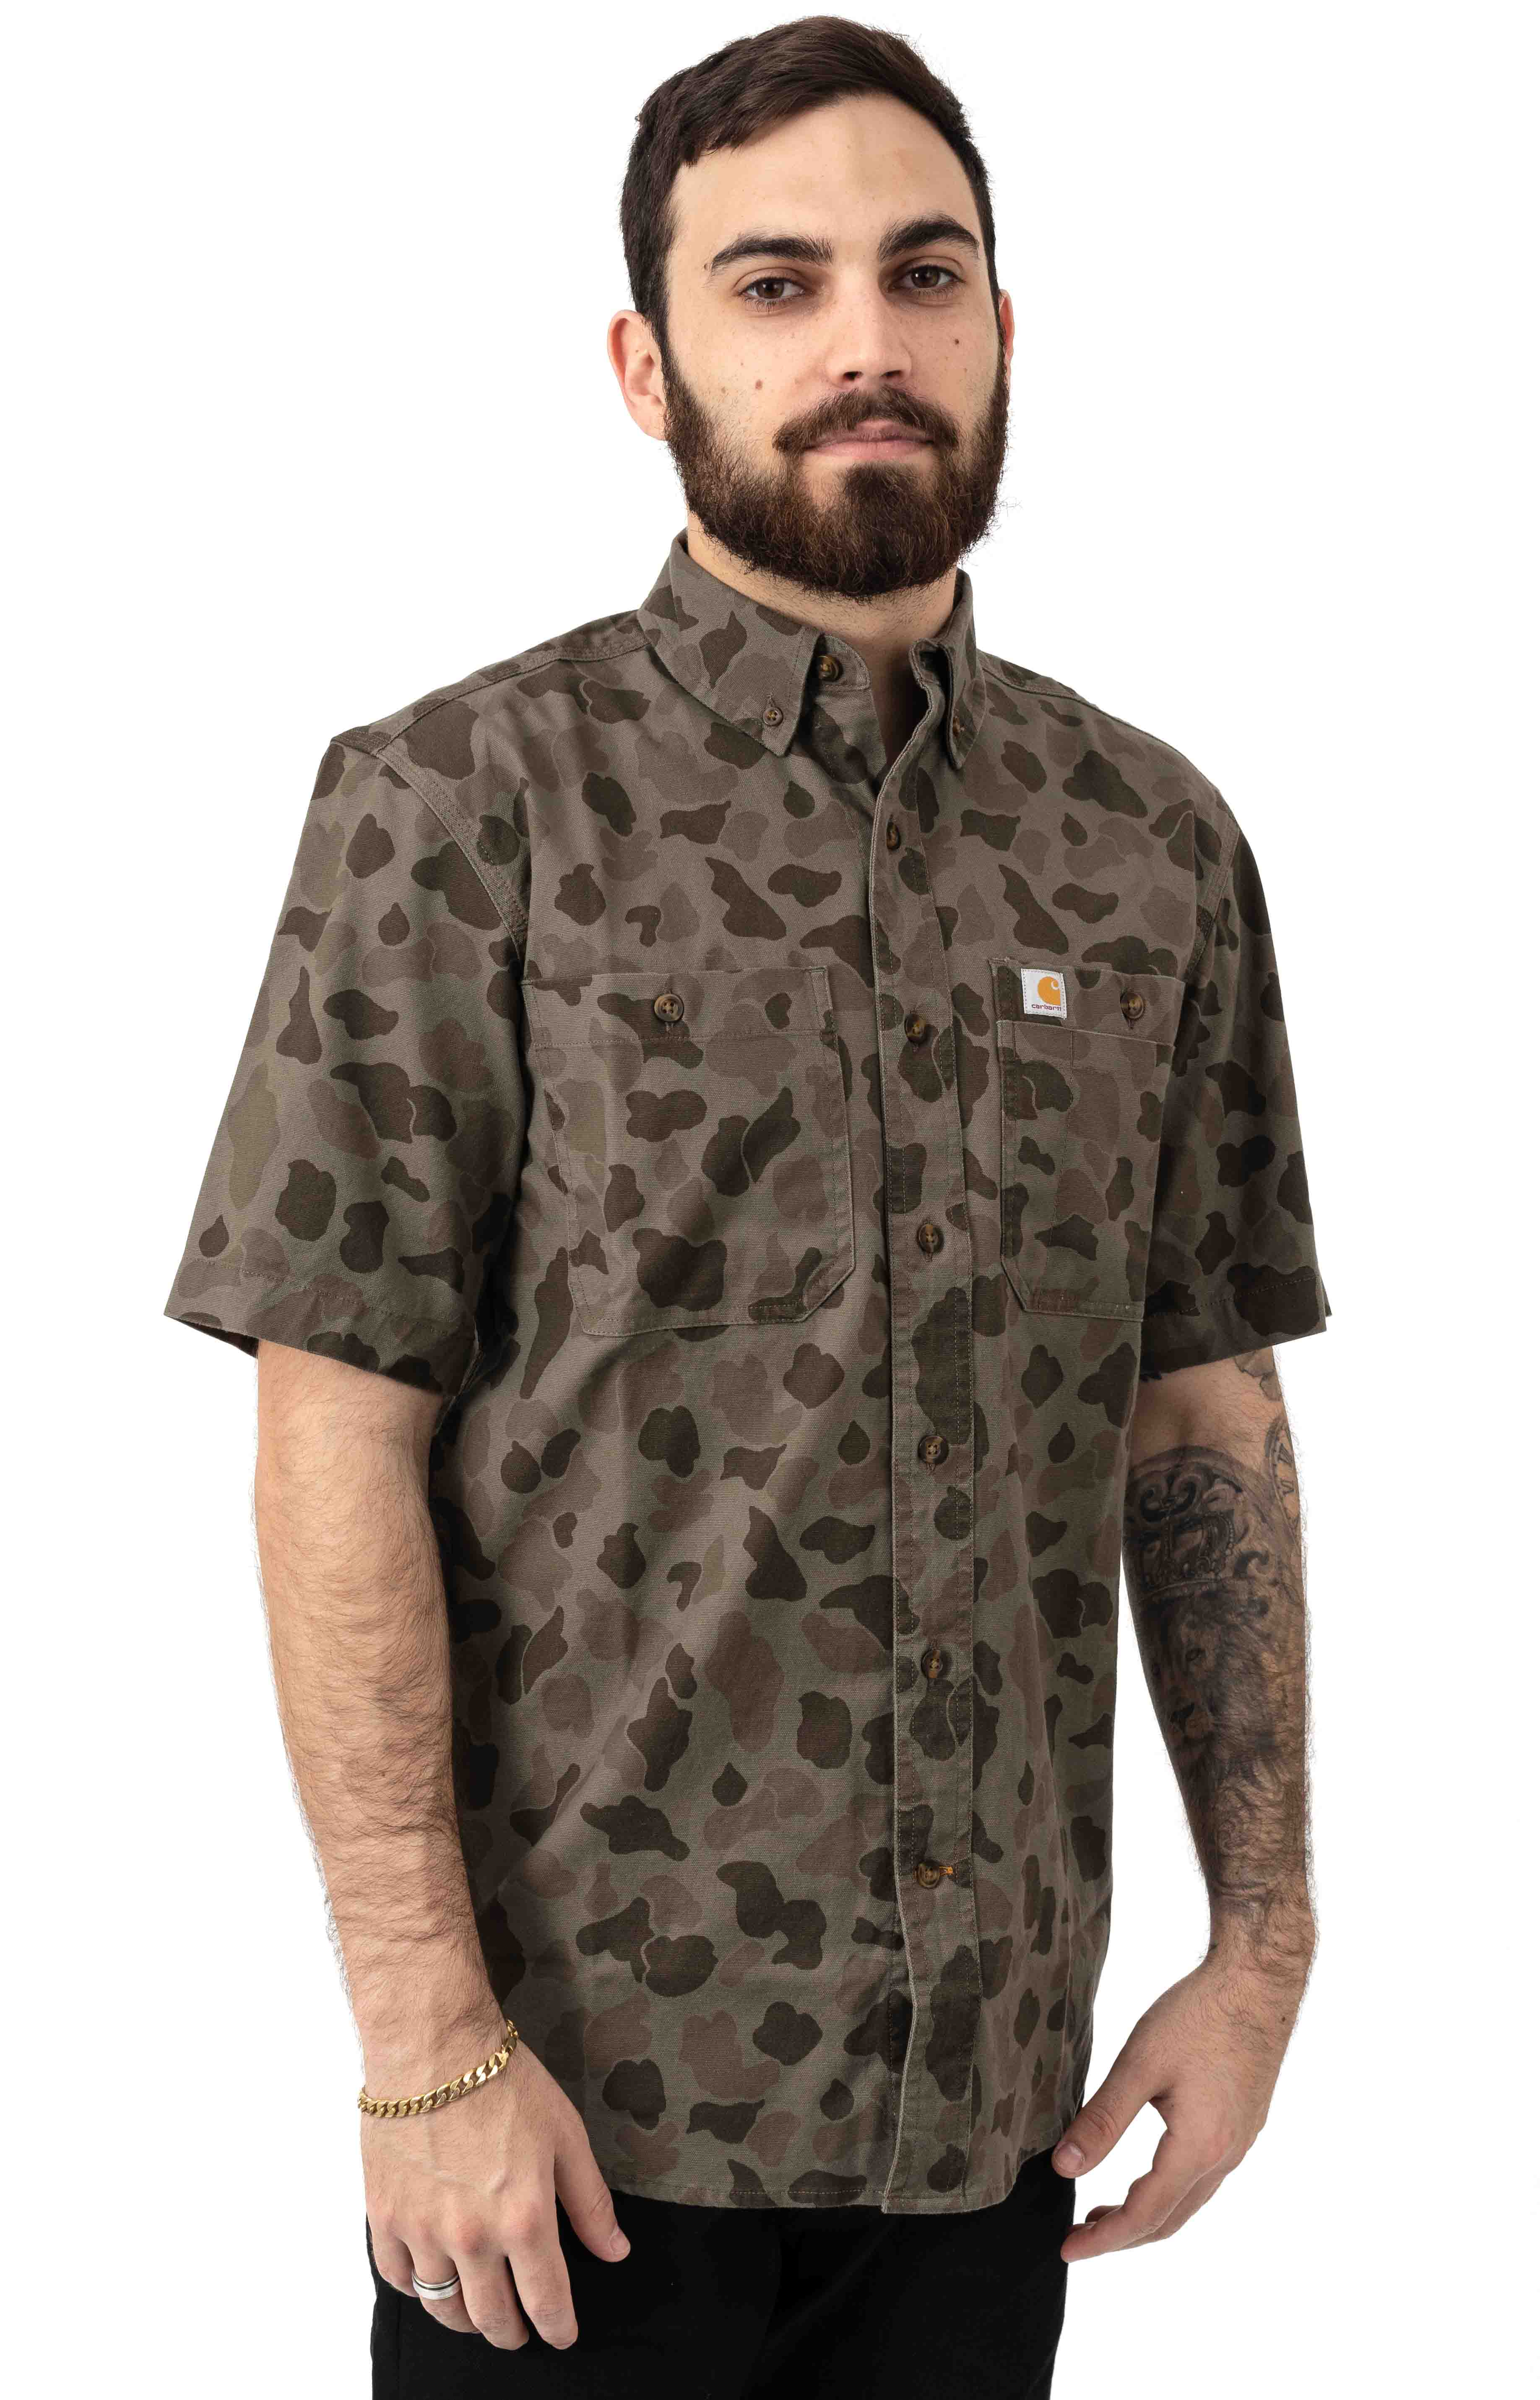 (103555) Rugged Flex Rigby S/S Work Shirt - Tarmac/Duck Camo  2